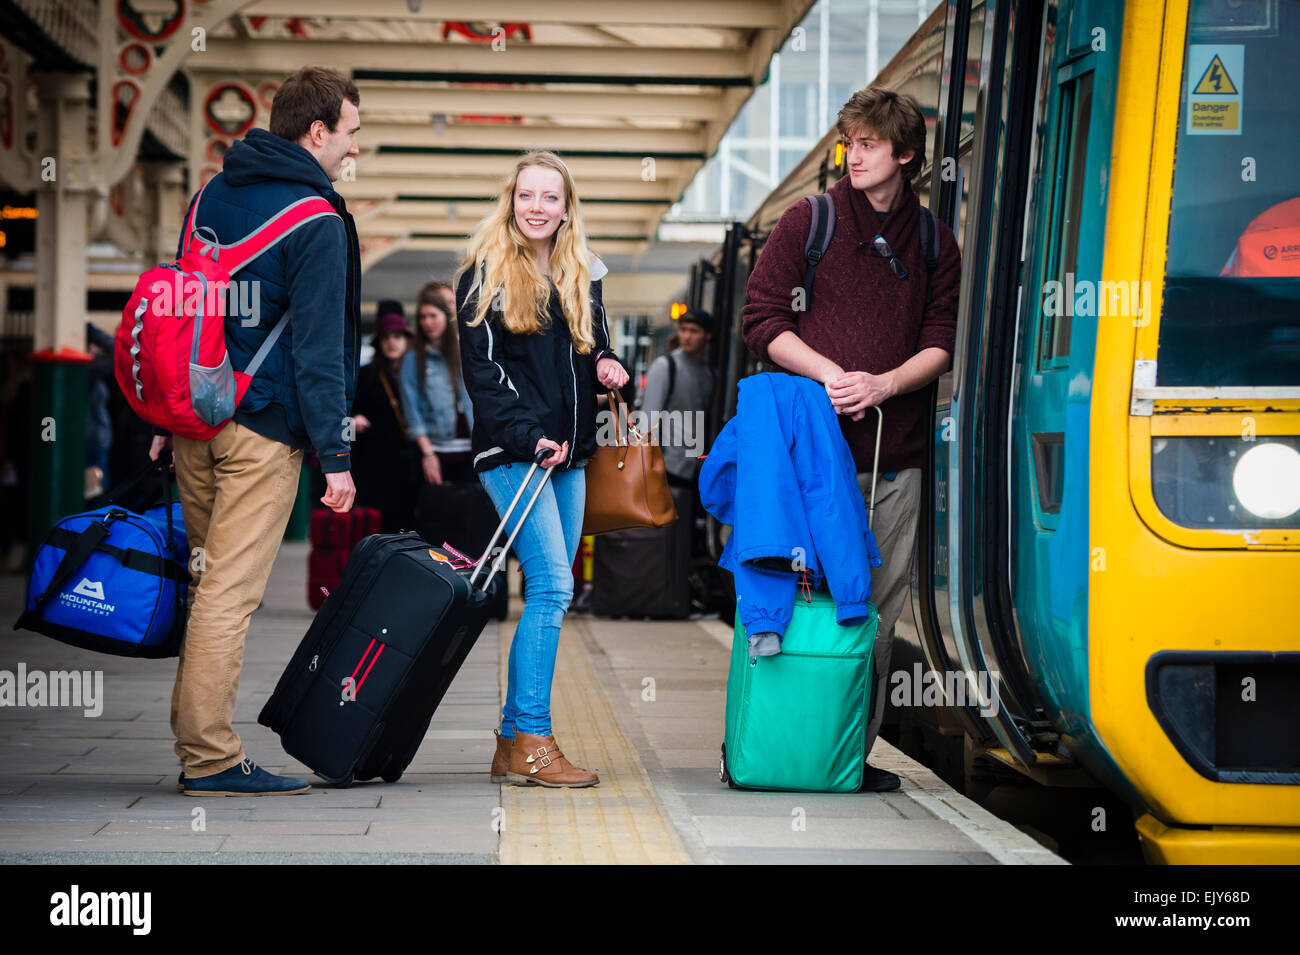 Public Transport University Students With Their Luggage